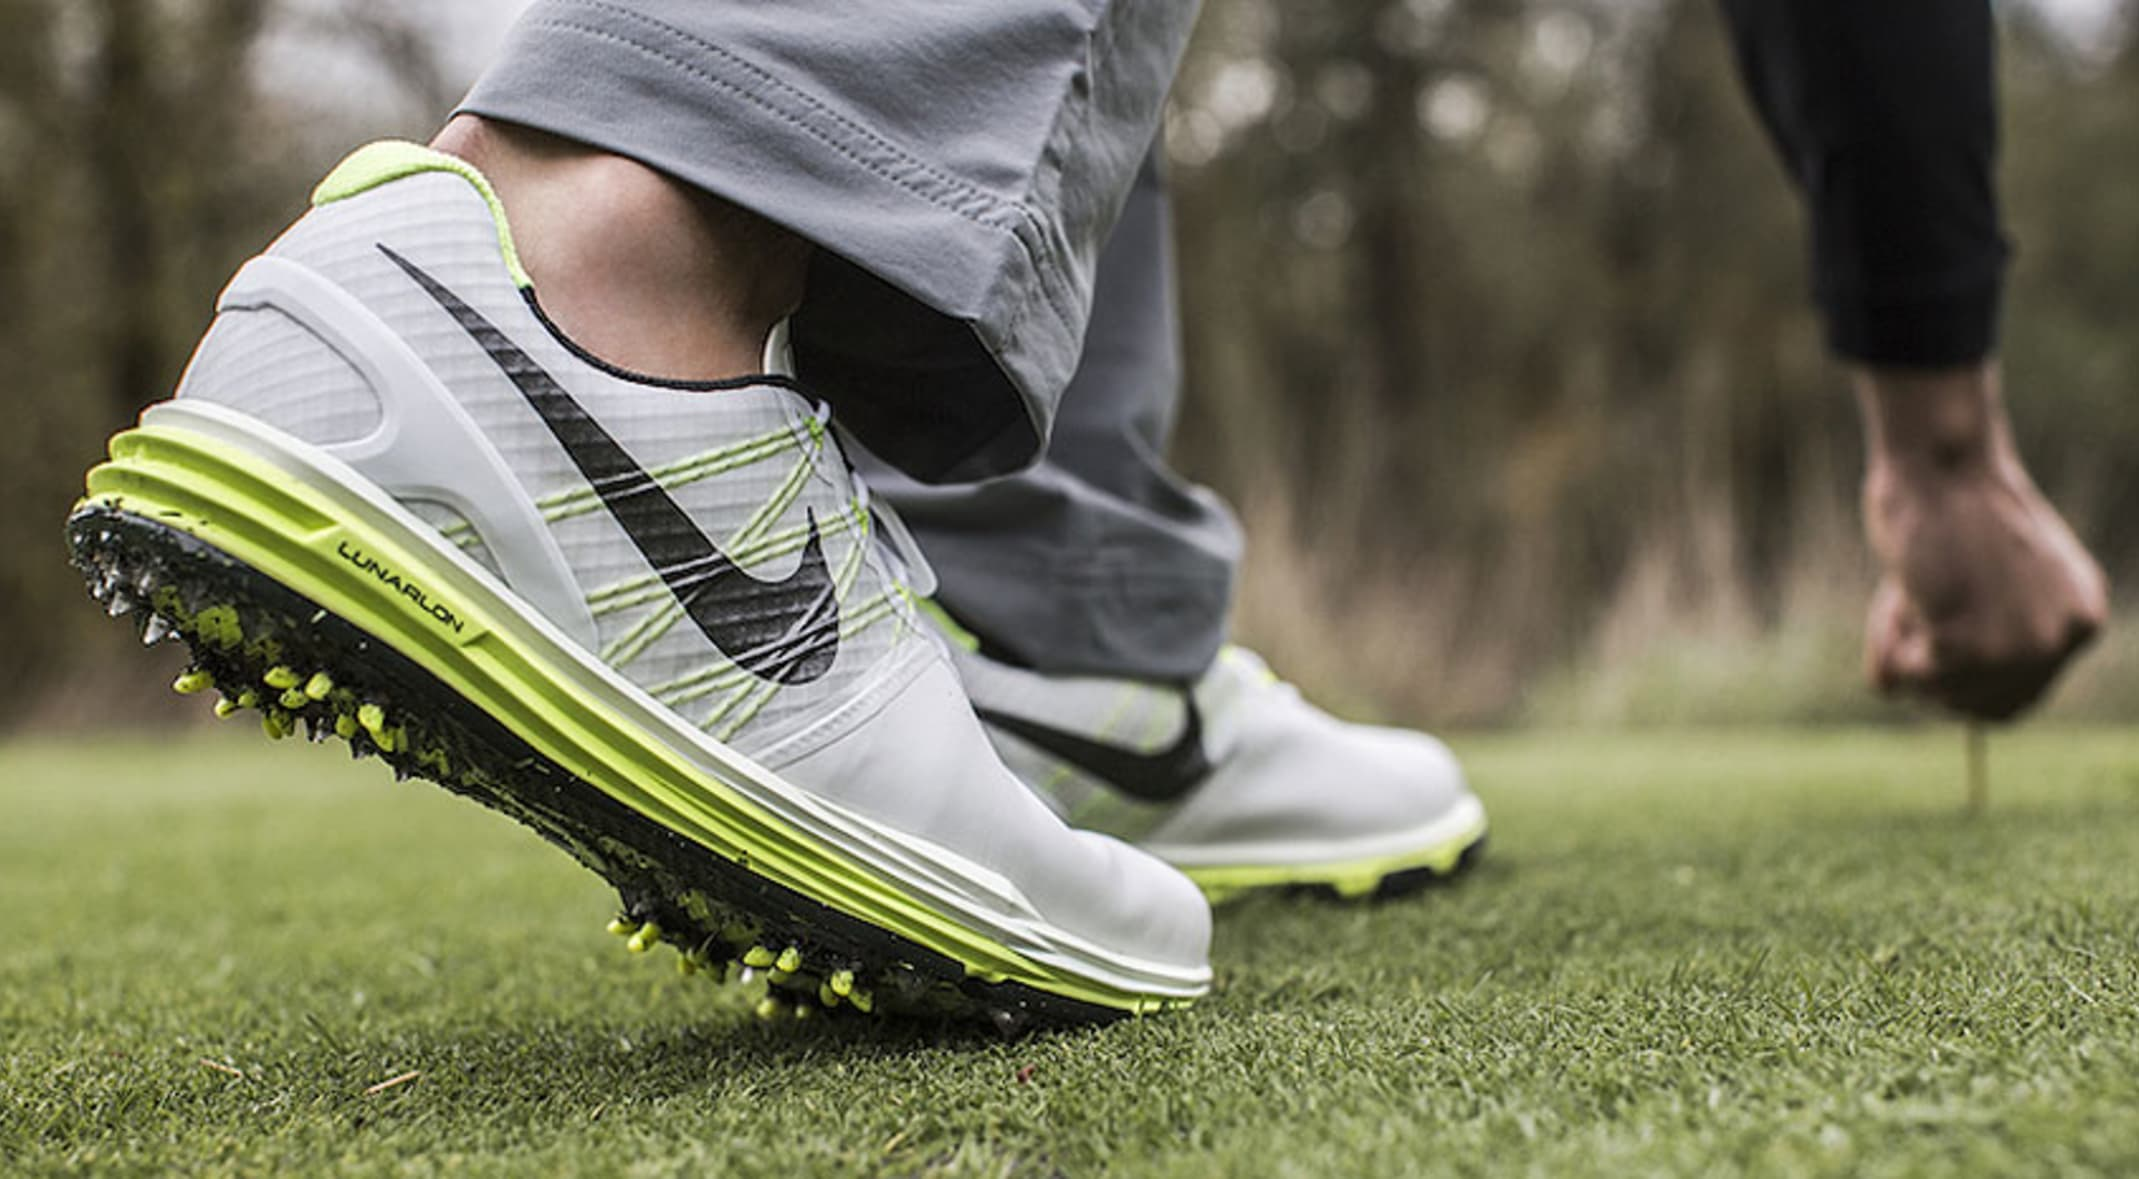 McIlroy had major role in creating Nike s new shoes e5a80e3df